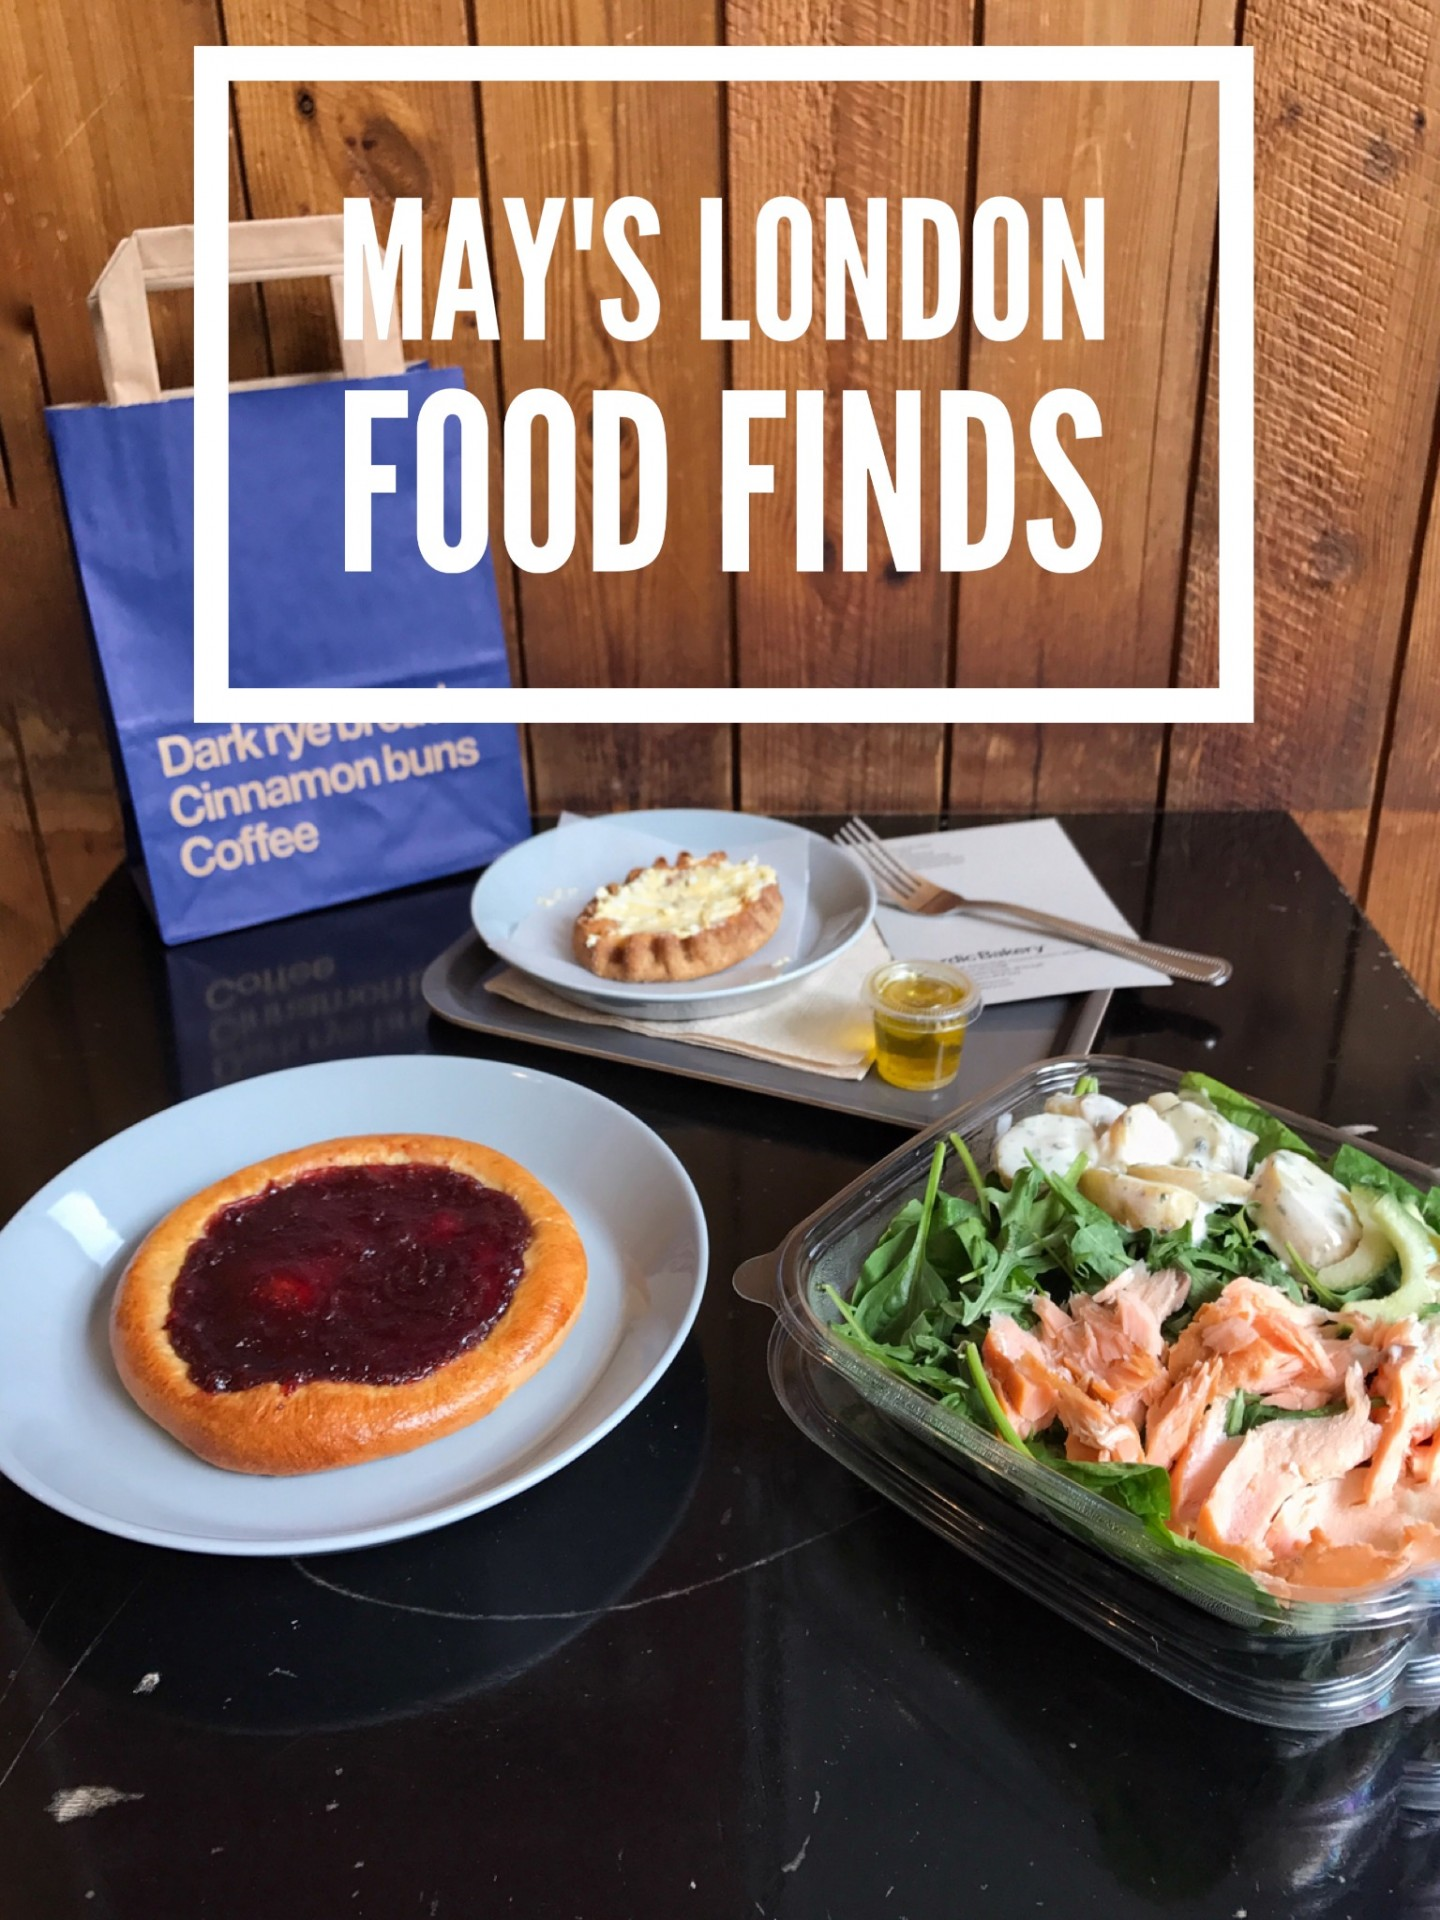 May's London Food Finds (2018)